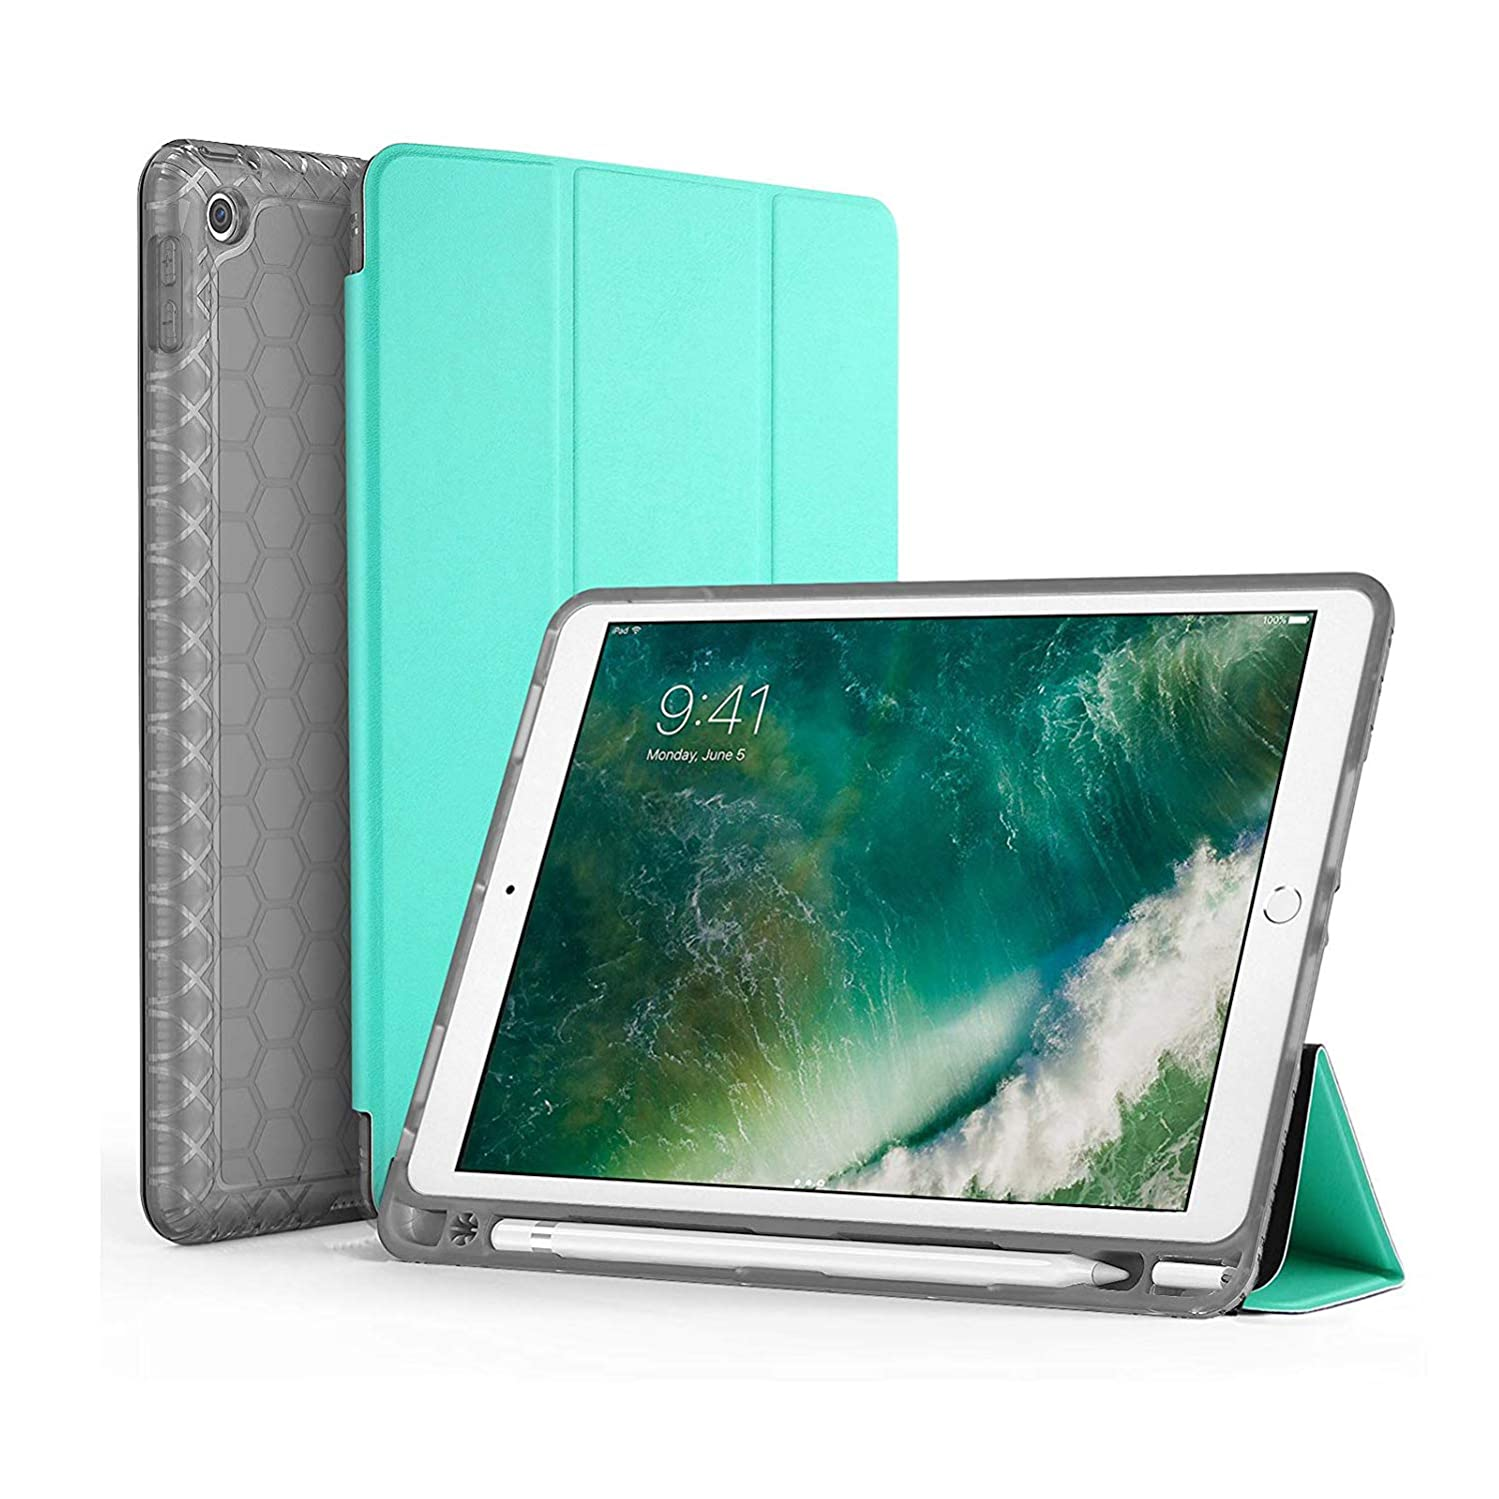 SWEES Compatible iPad 9.7 2018/2017 Case with Pencil Holder, Shockproof Durable Smart Cover Leather Case with Built-in Apple Pencil Holder Compatible iPad 9.7 inch 6th/5th Generation, Mint Green